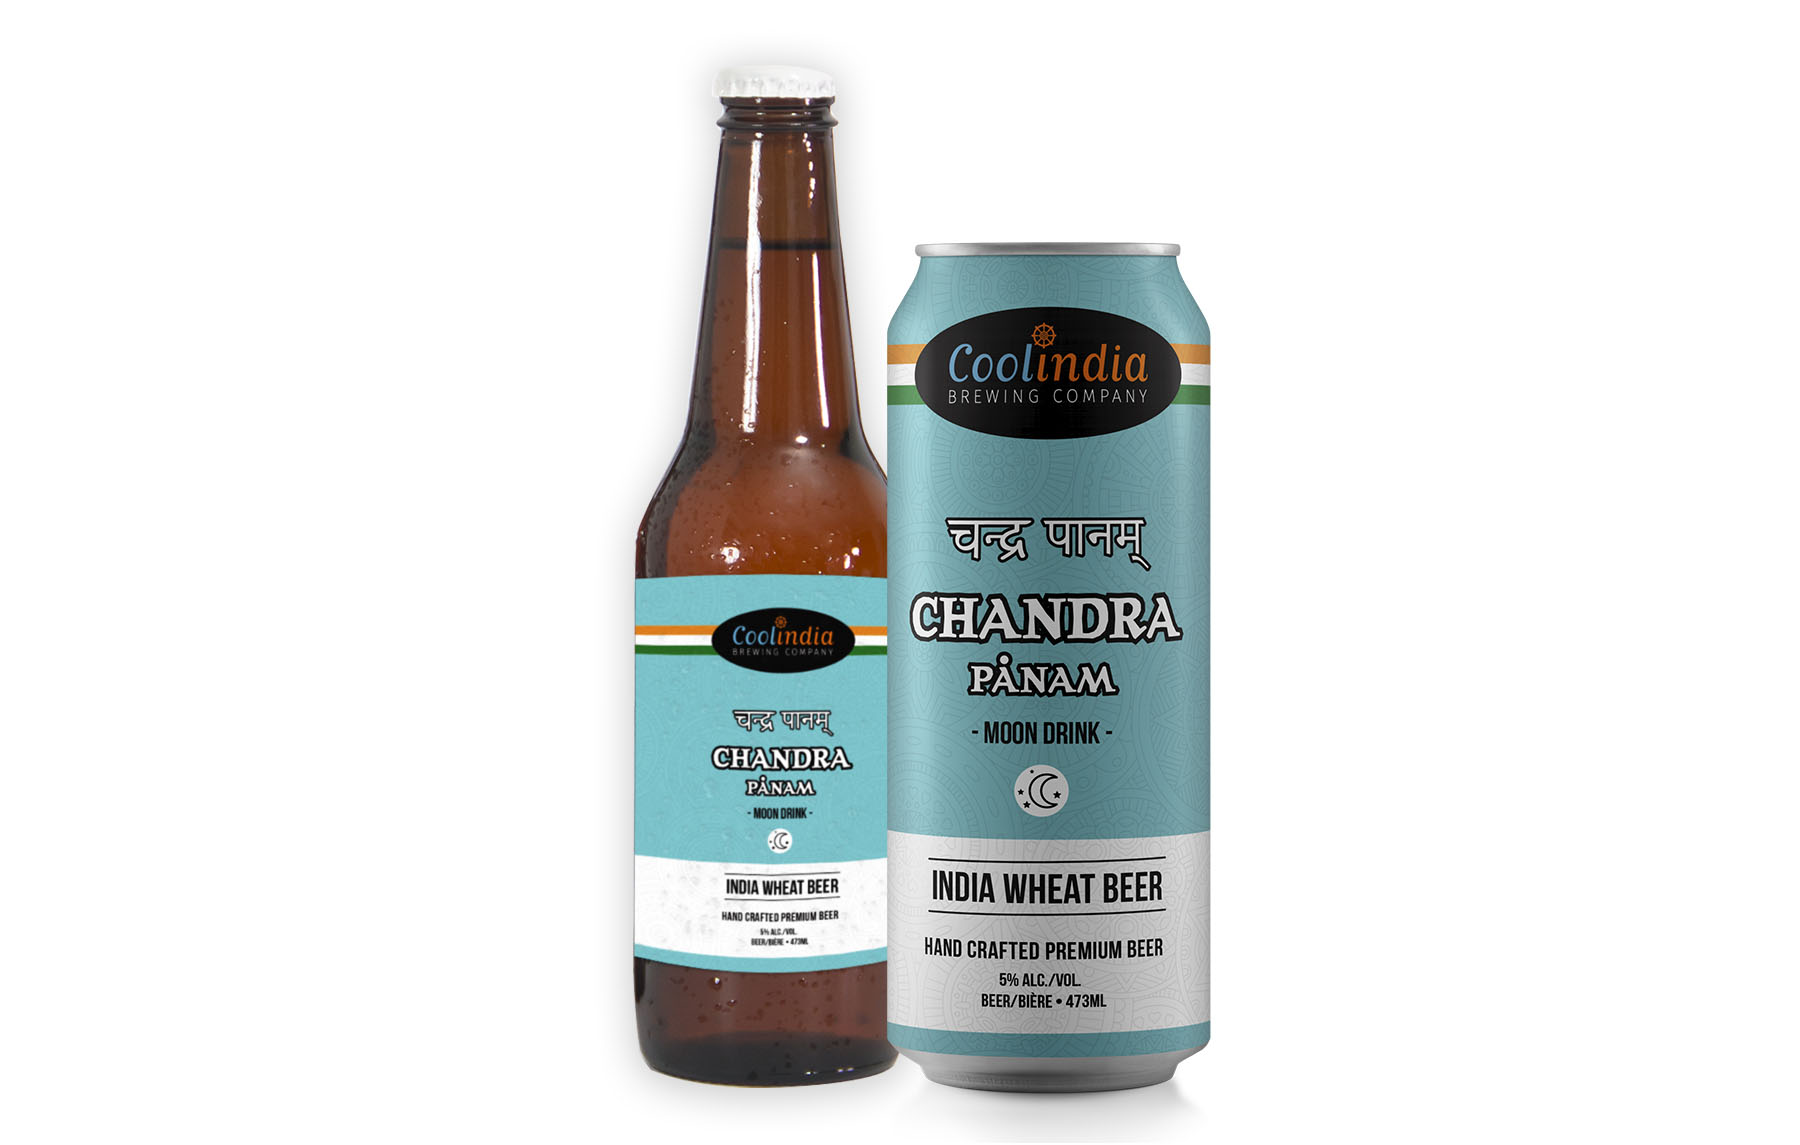 coolindia_bottles_mockup_chandra